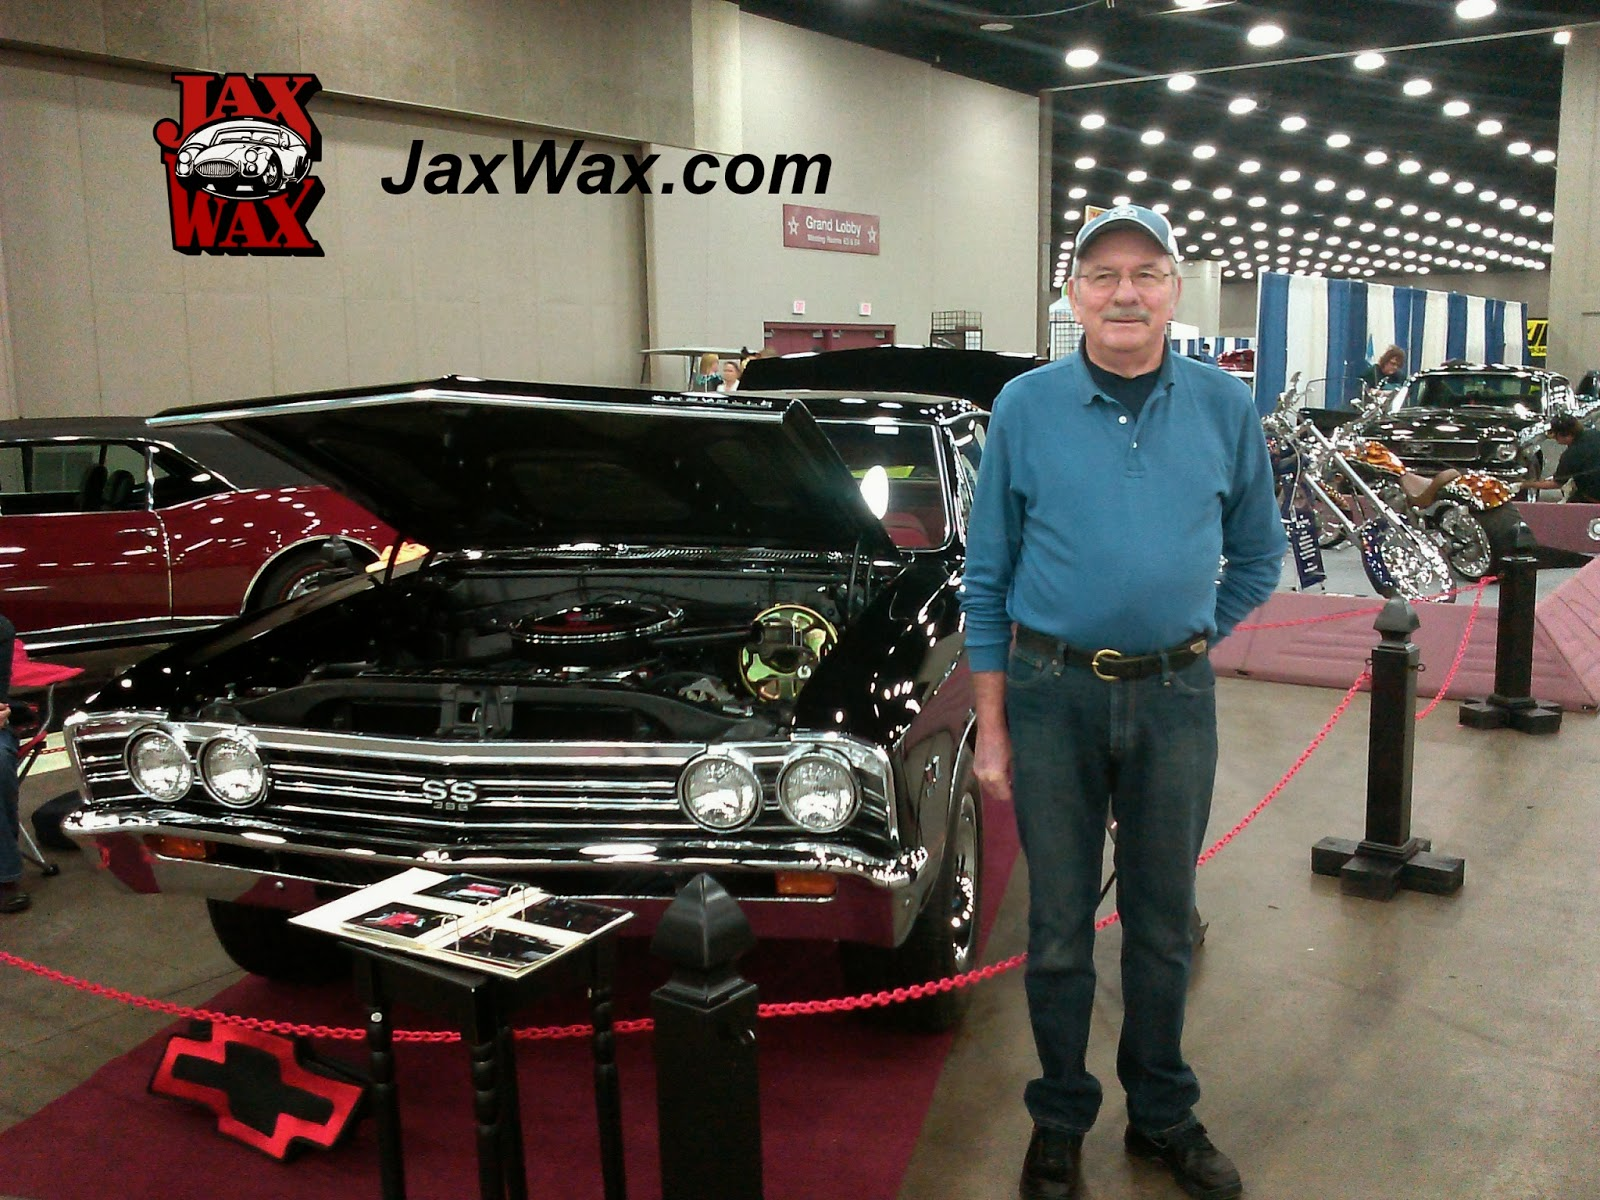 1967 Chevy Chevelle SS Carl Casper Auto Show Jax Wax Customer